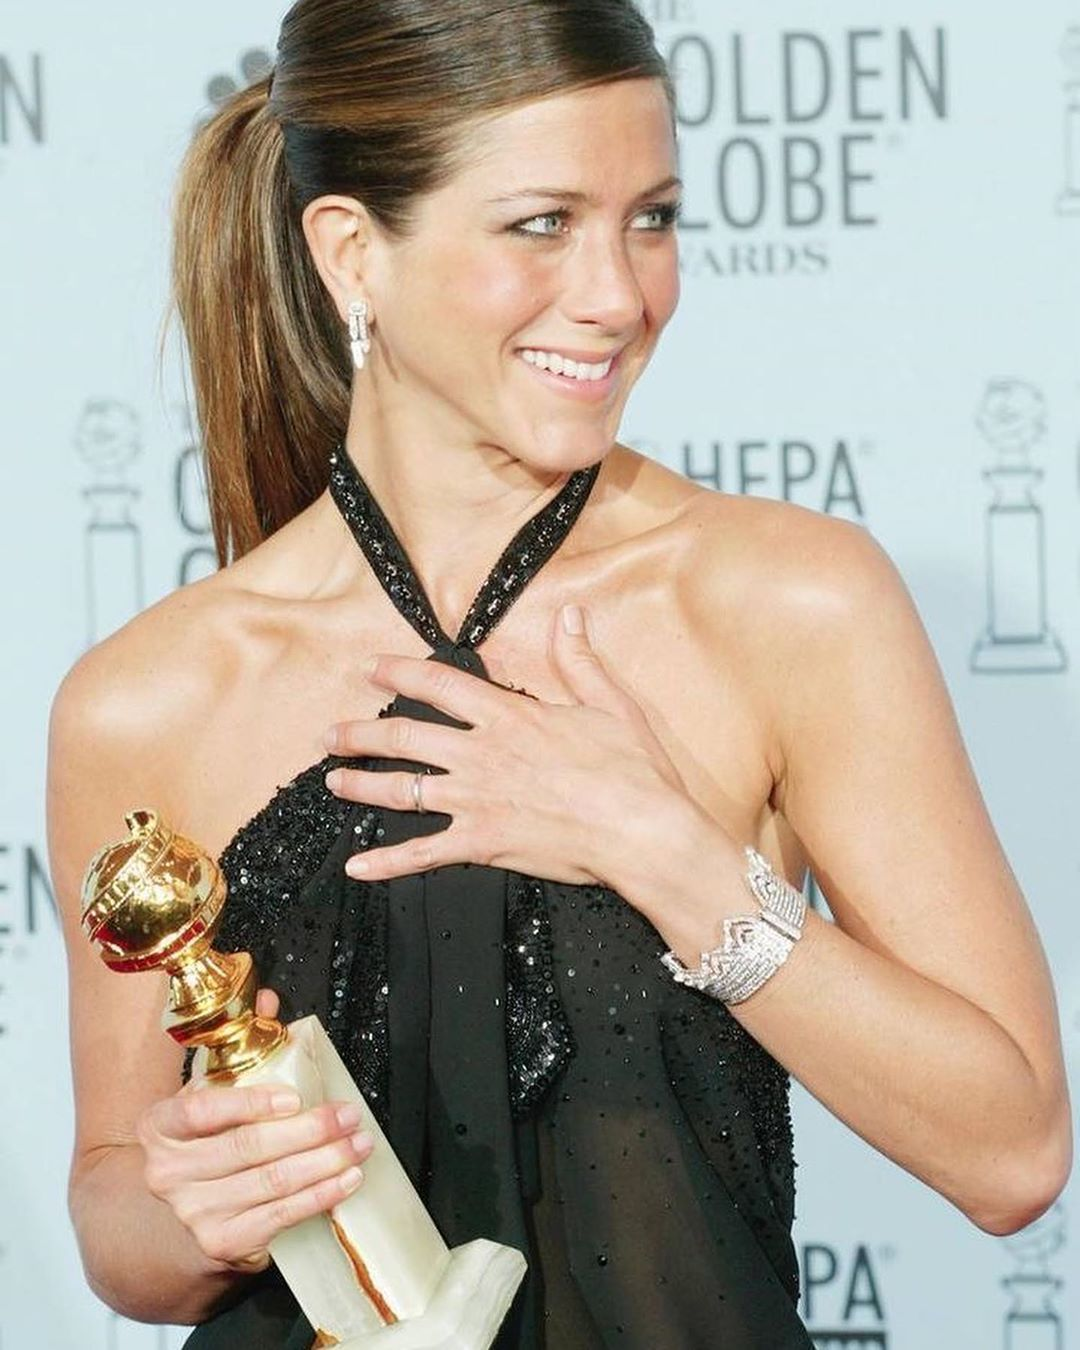 Fan Page Jennifer Aniston On Instagram Jenniferaniston Jenniferanistonfan Faniston Jennifer Aniston Hair Jennifer Aniston Jeniffer Aniston